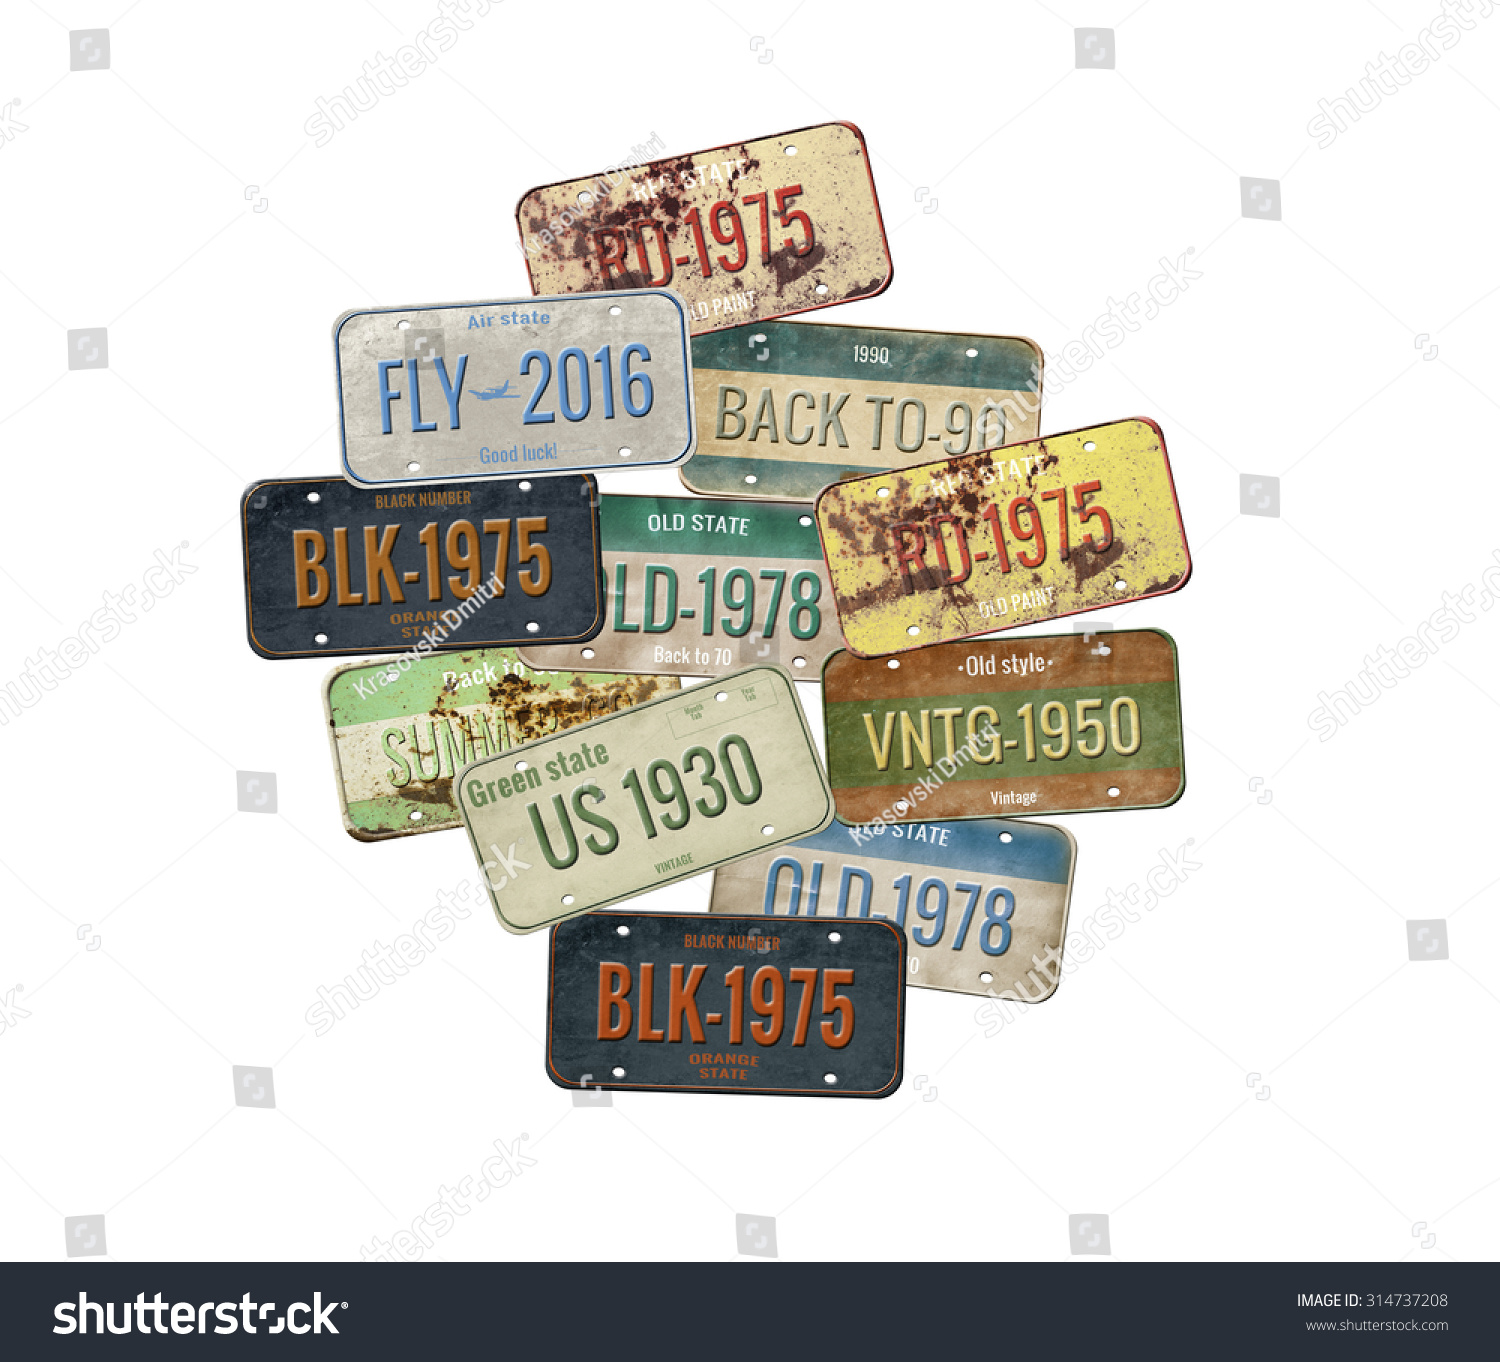 how to find car license plate number